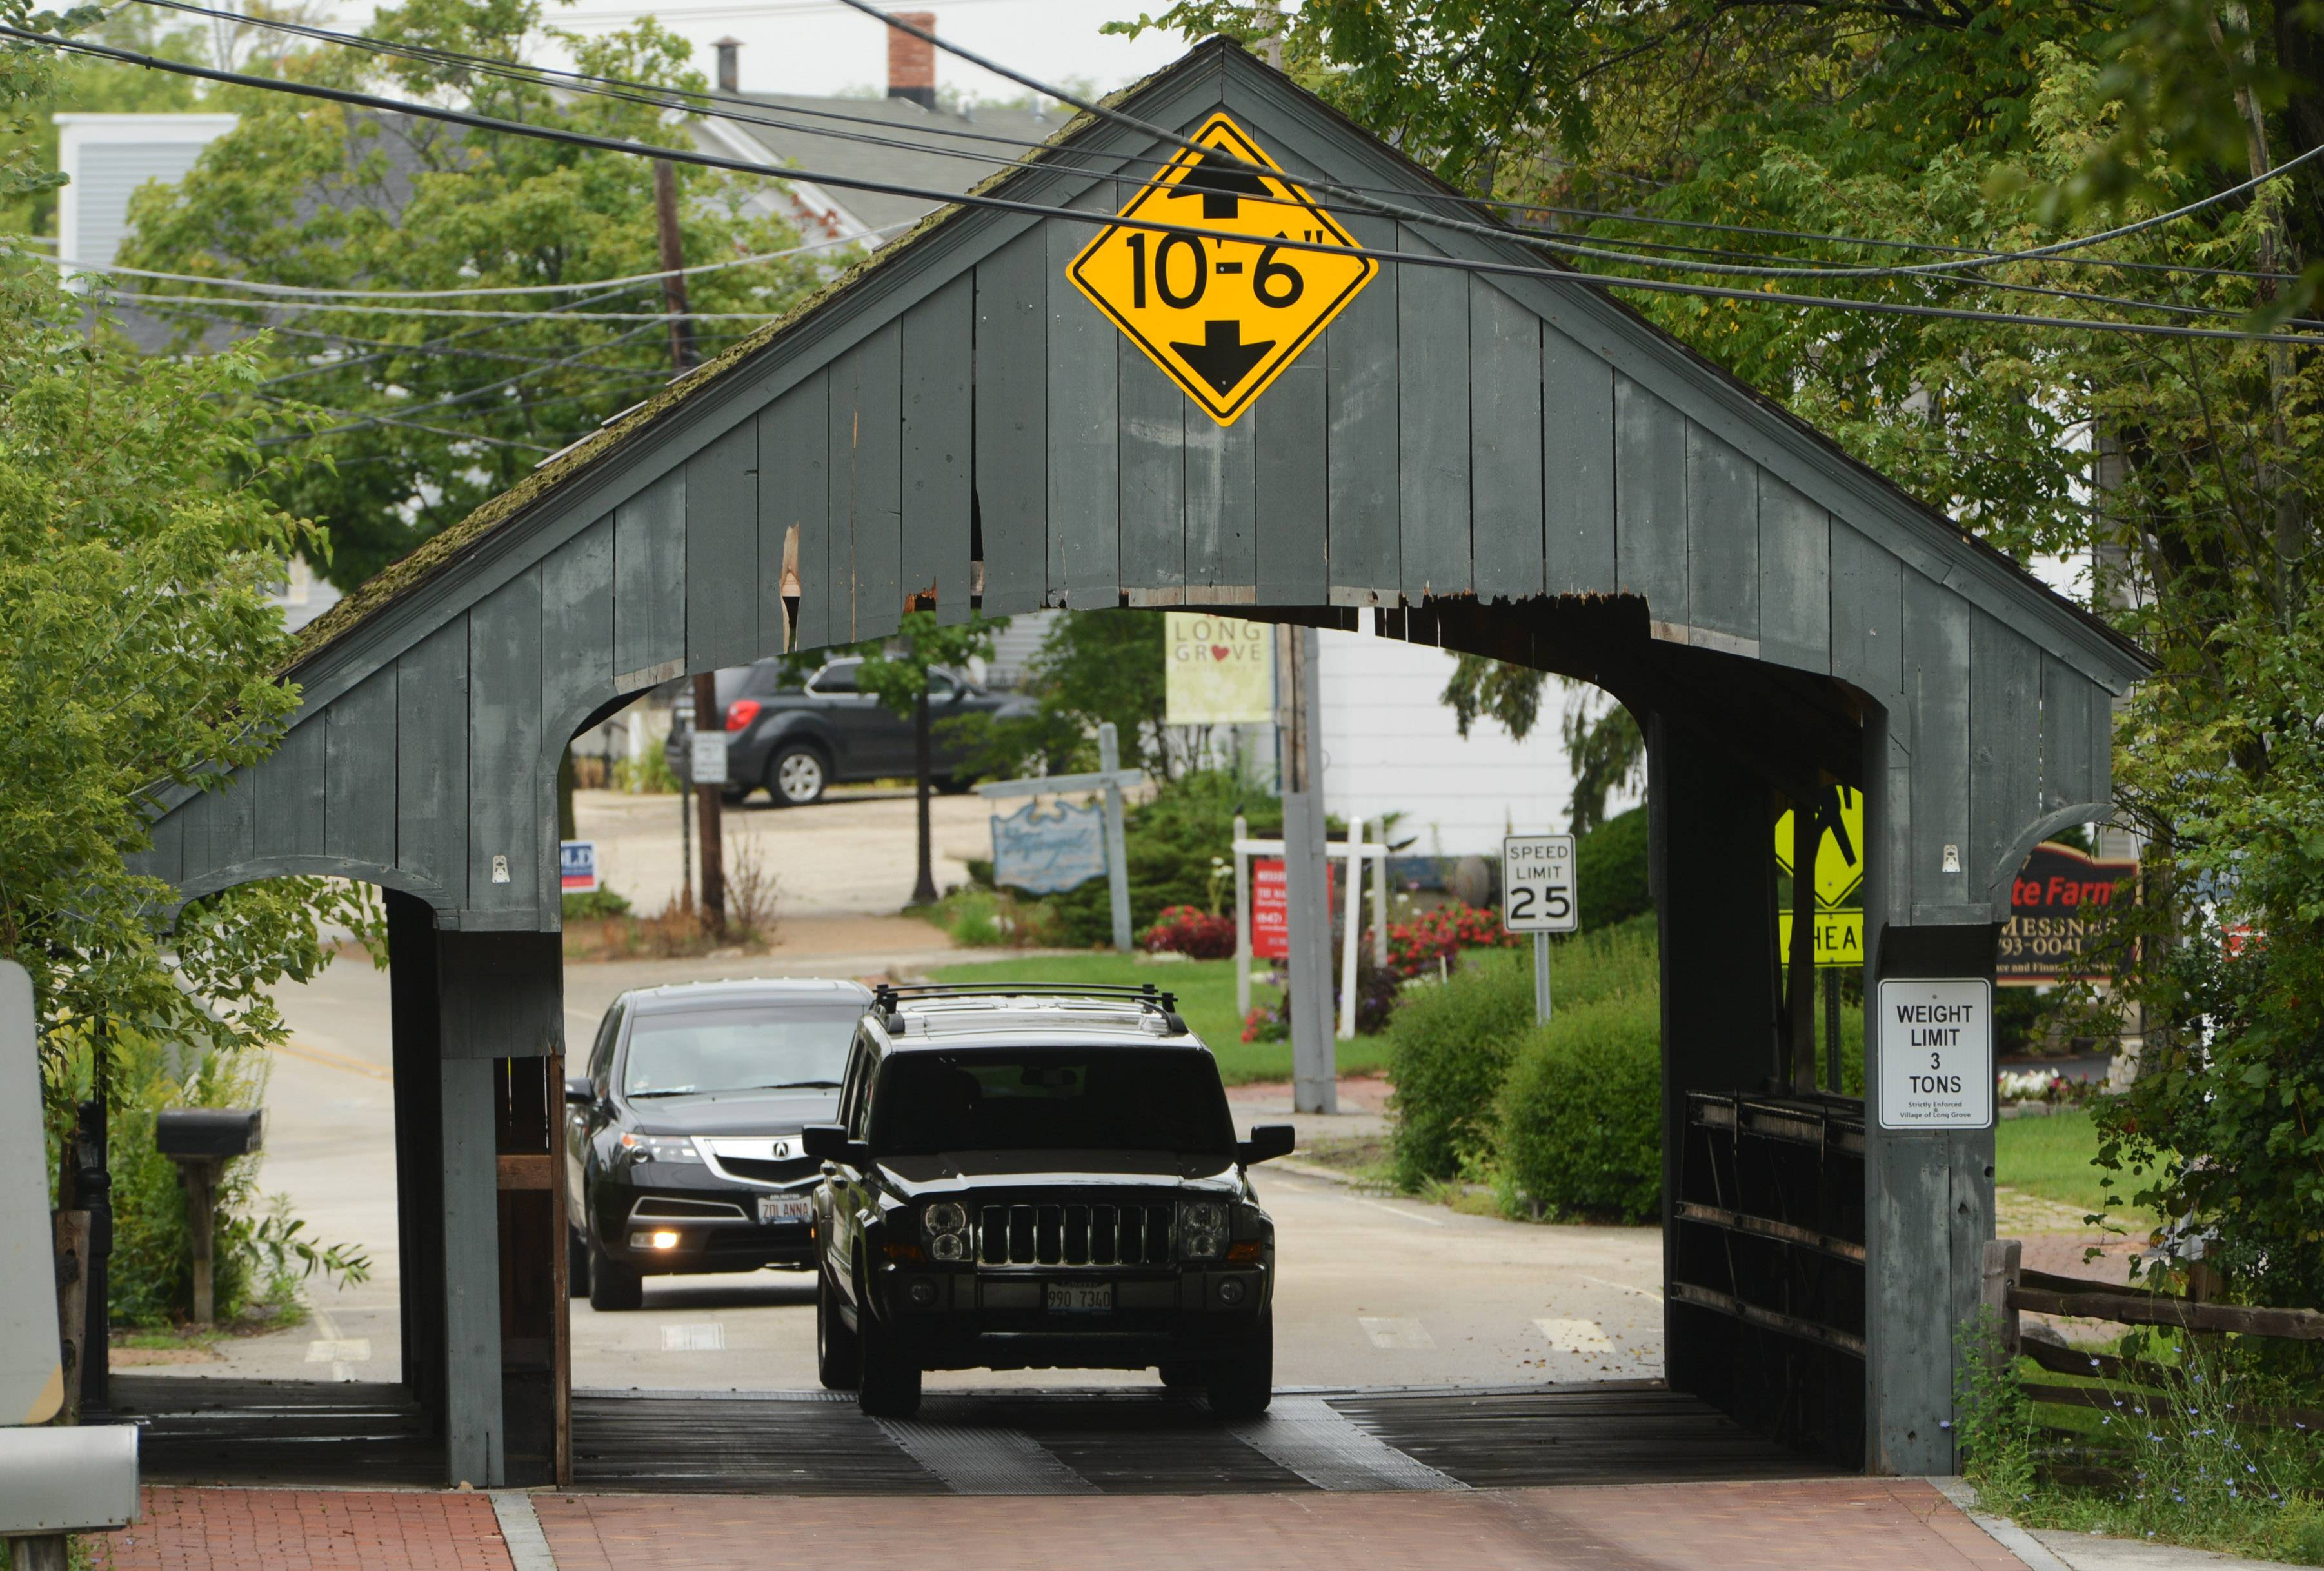 The possibility of national landmark status for Long Grove's one-lane bridge dating to the early 1900s means a federal law now provides protection if officials decide to replace the span. Village officials are weighing replacement and renovation options for the bridge.